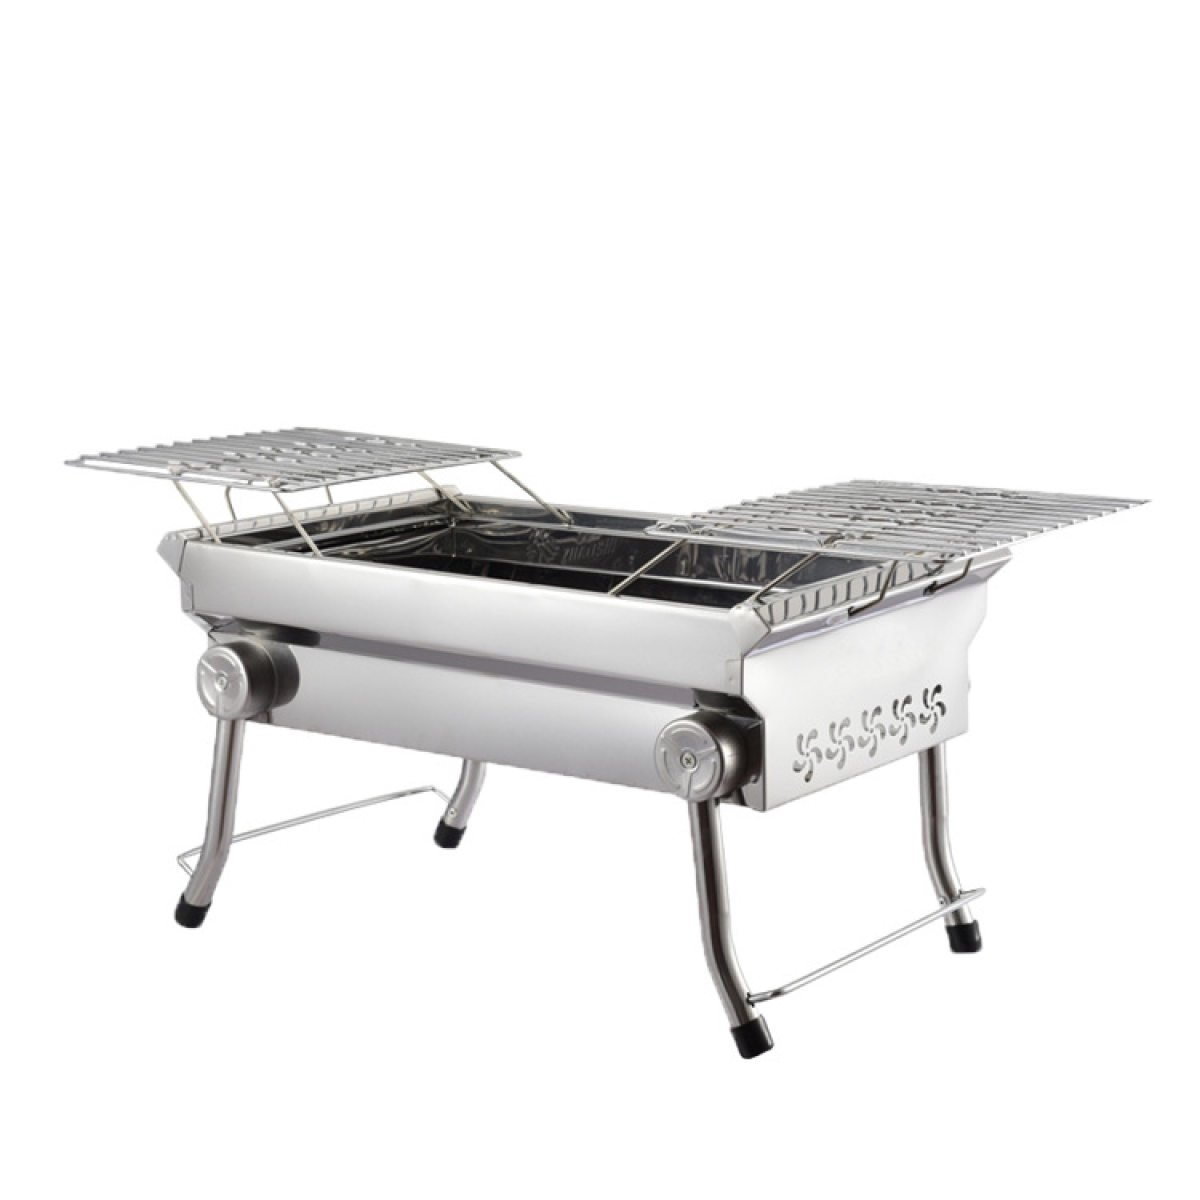 Outdoor Grill Holzkohle Grill Edelstahl Barbecue Pits Outdoor Barbecue Pits Holzkohle Outdoor Grill,A4